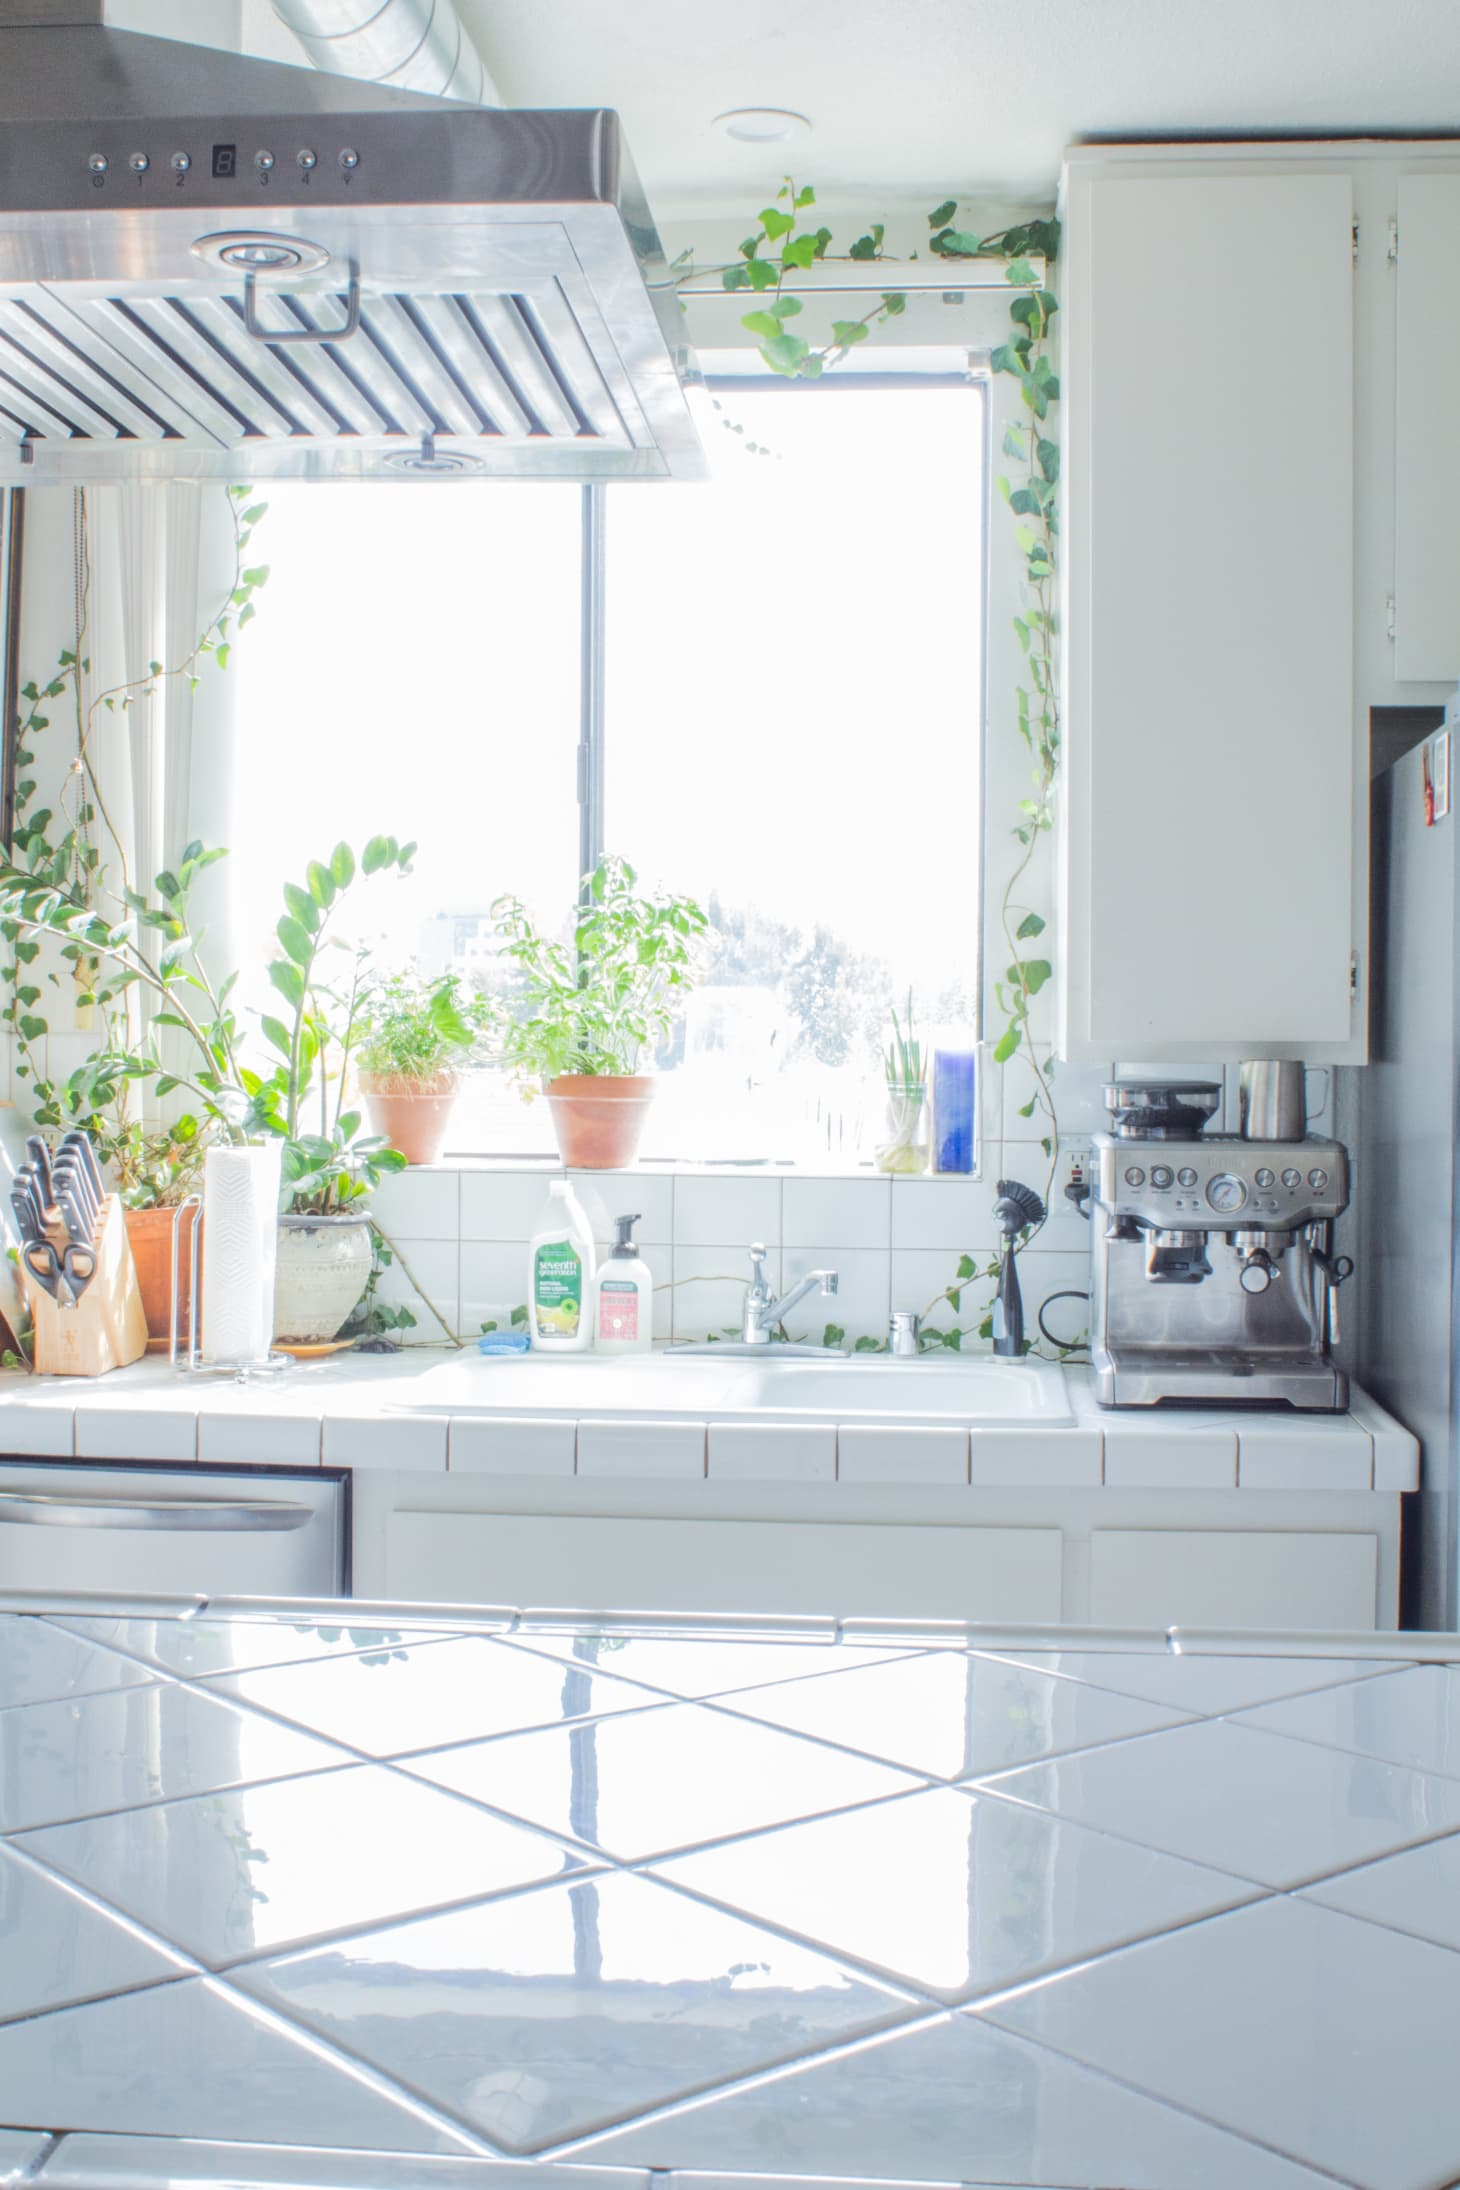 Kitchen Sink Window Decorating Ideas | Apartment Therapy